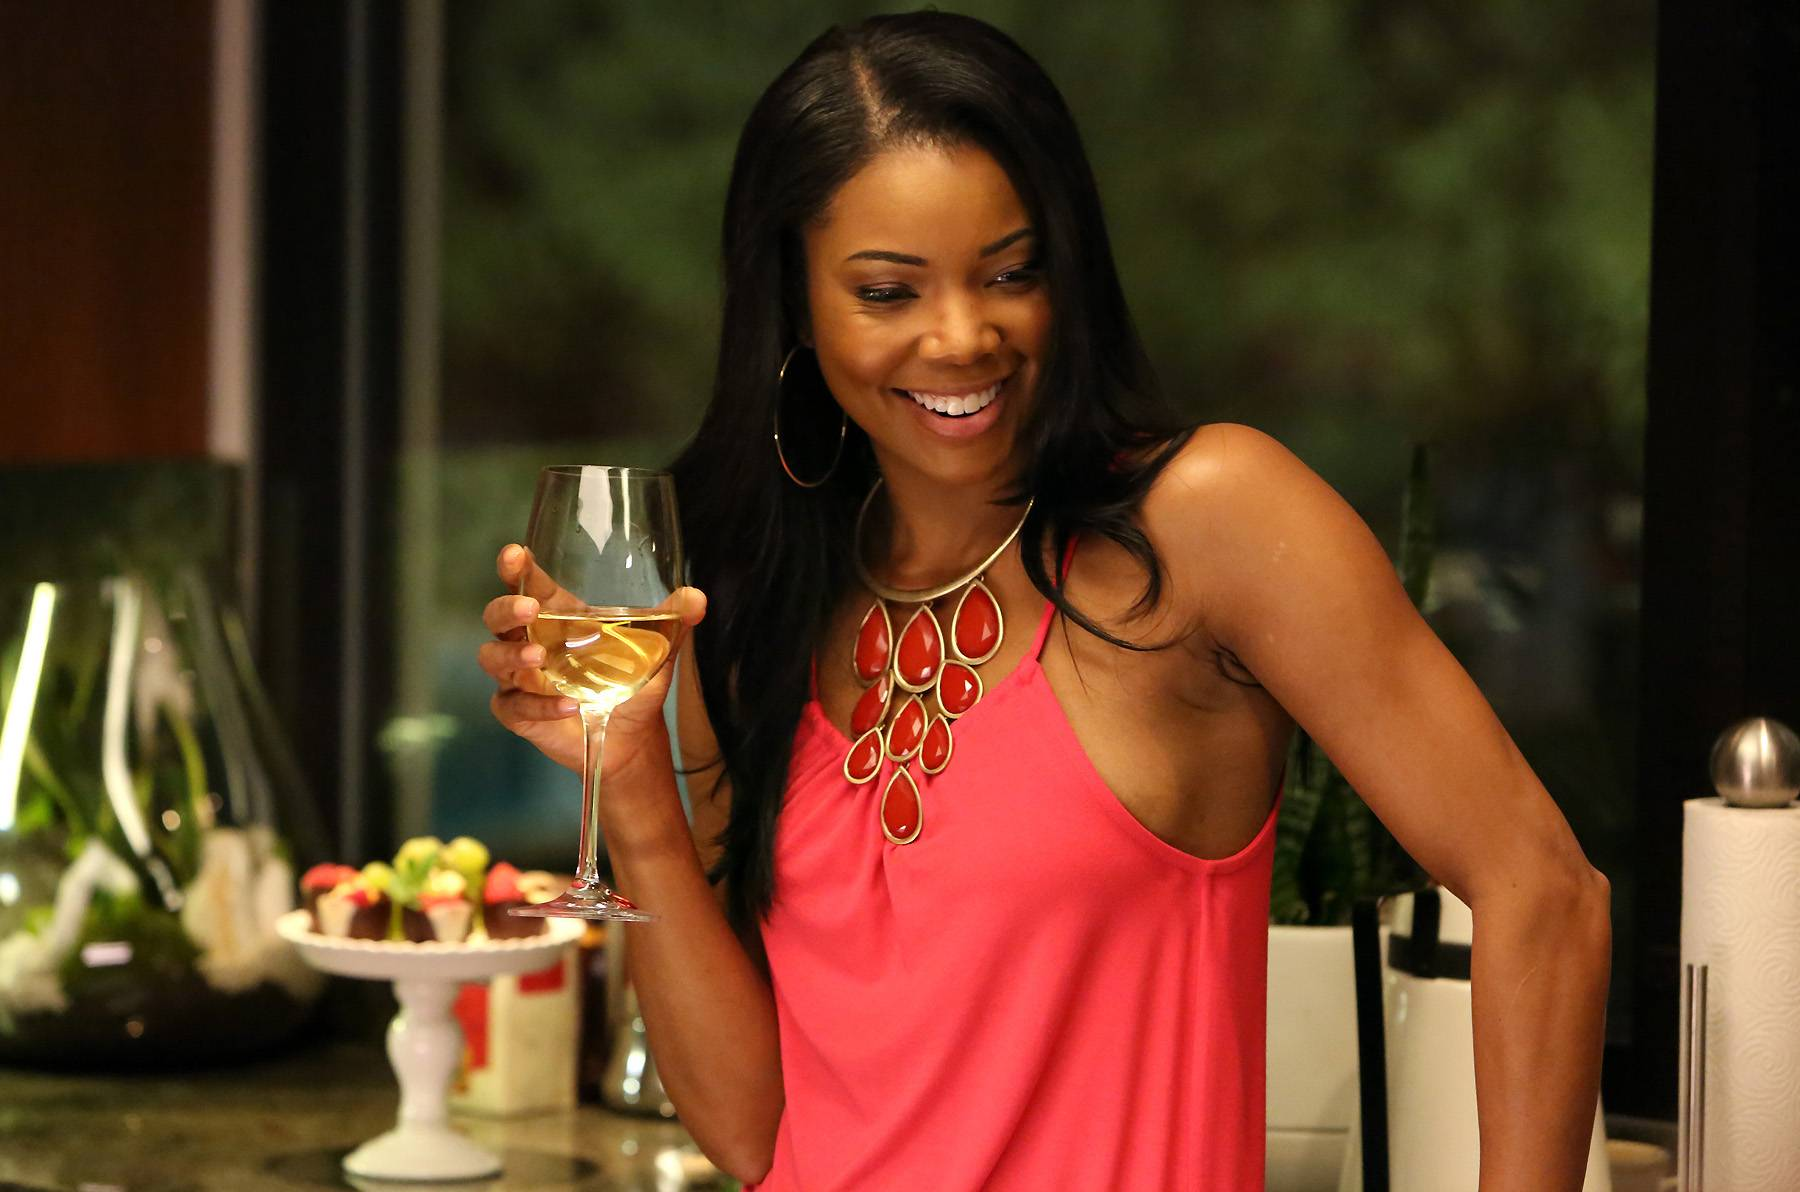 But don't forget to have fun and learn to relax. - (Photo: Quantrell D. Colbert/BET Networks)